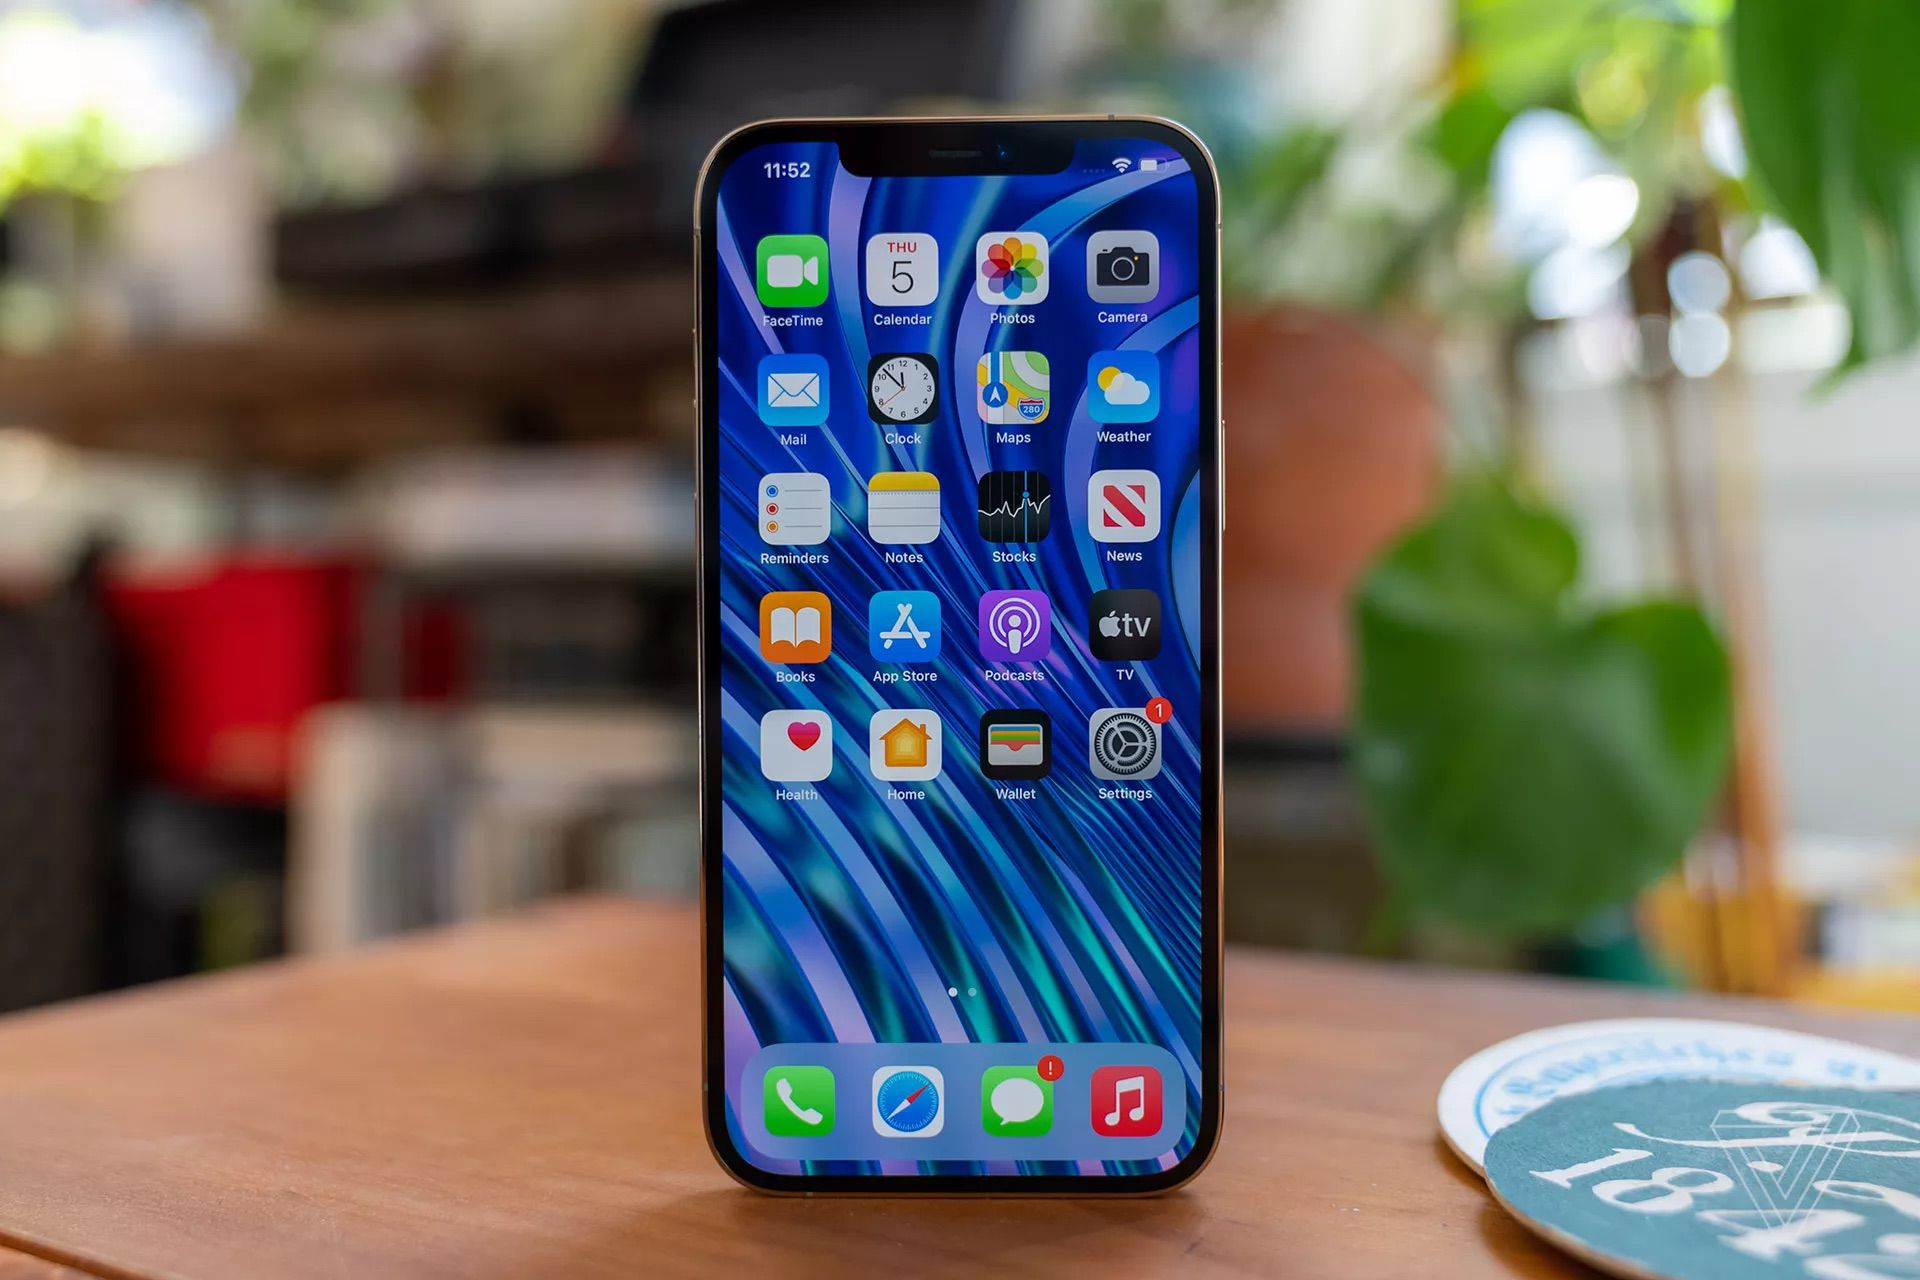 iPhone 12 Pro Max Reviews: 'The Best Smartphone Camera' You Can Get But 6.7-Inch Display Isn't for… – MacRumors